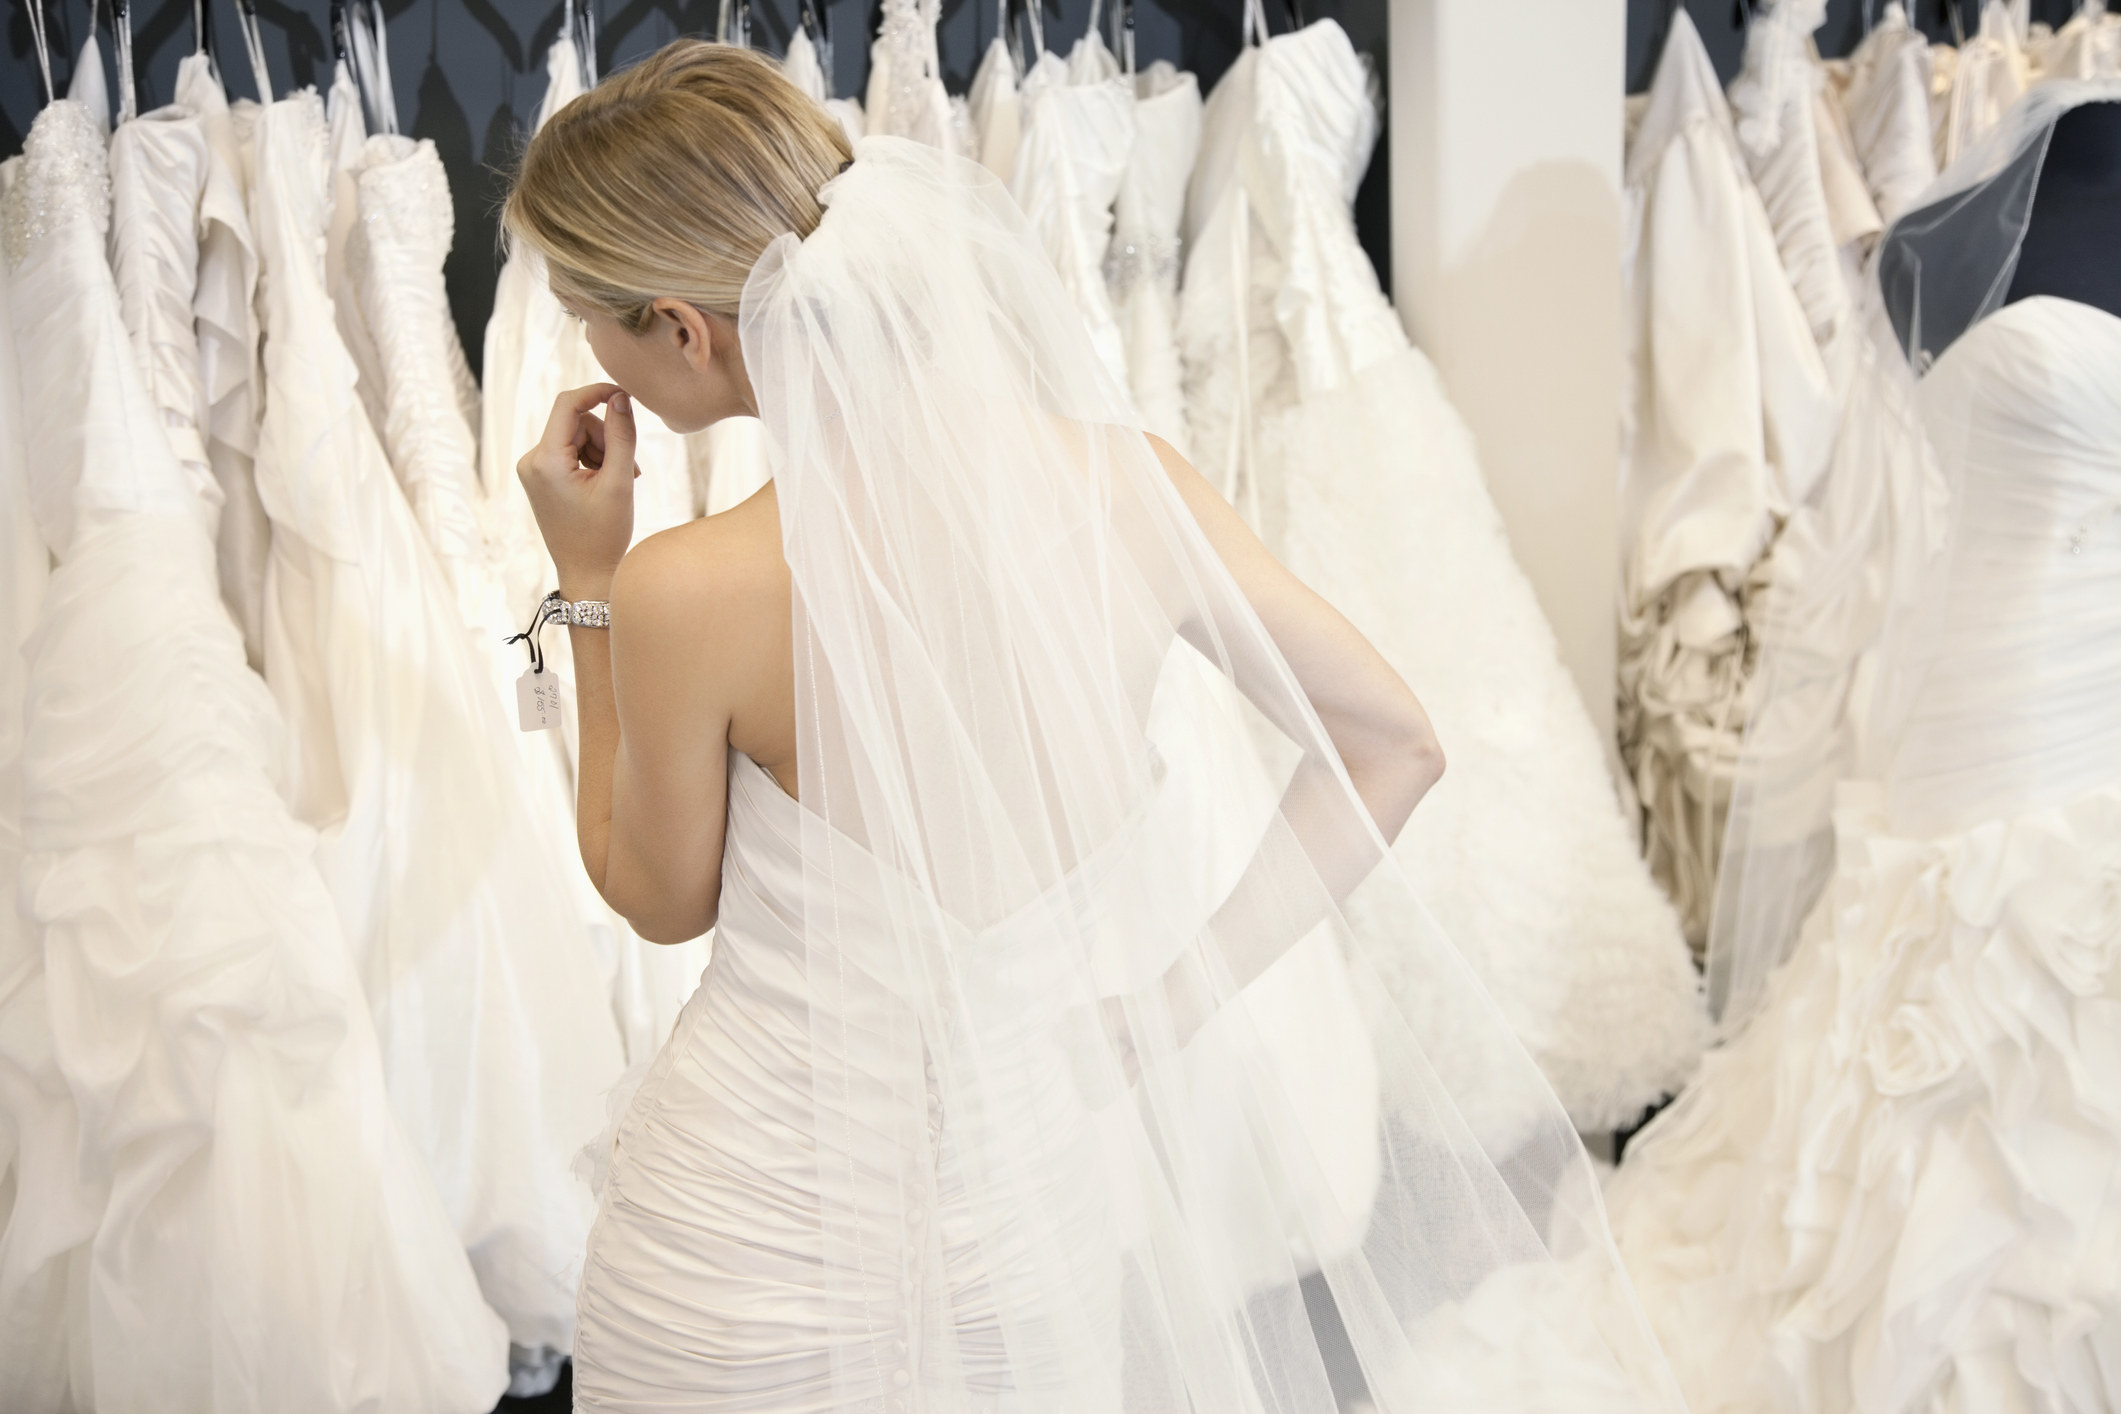 Bride looking at many different wedding dresses